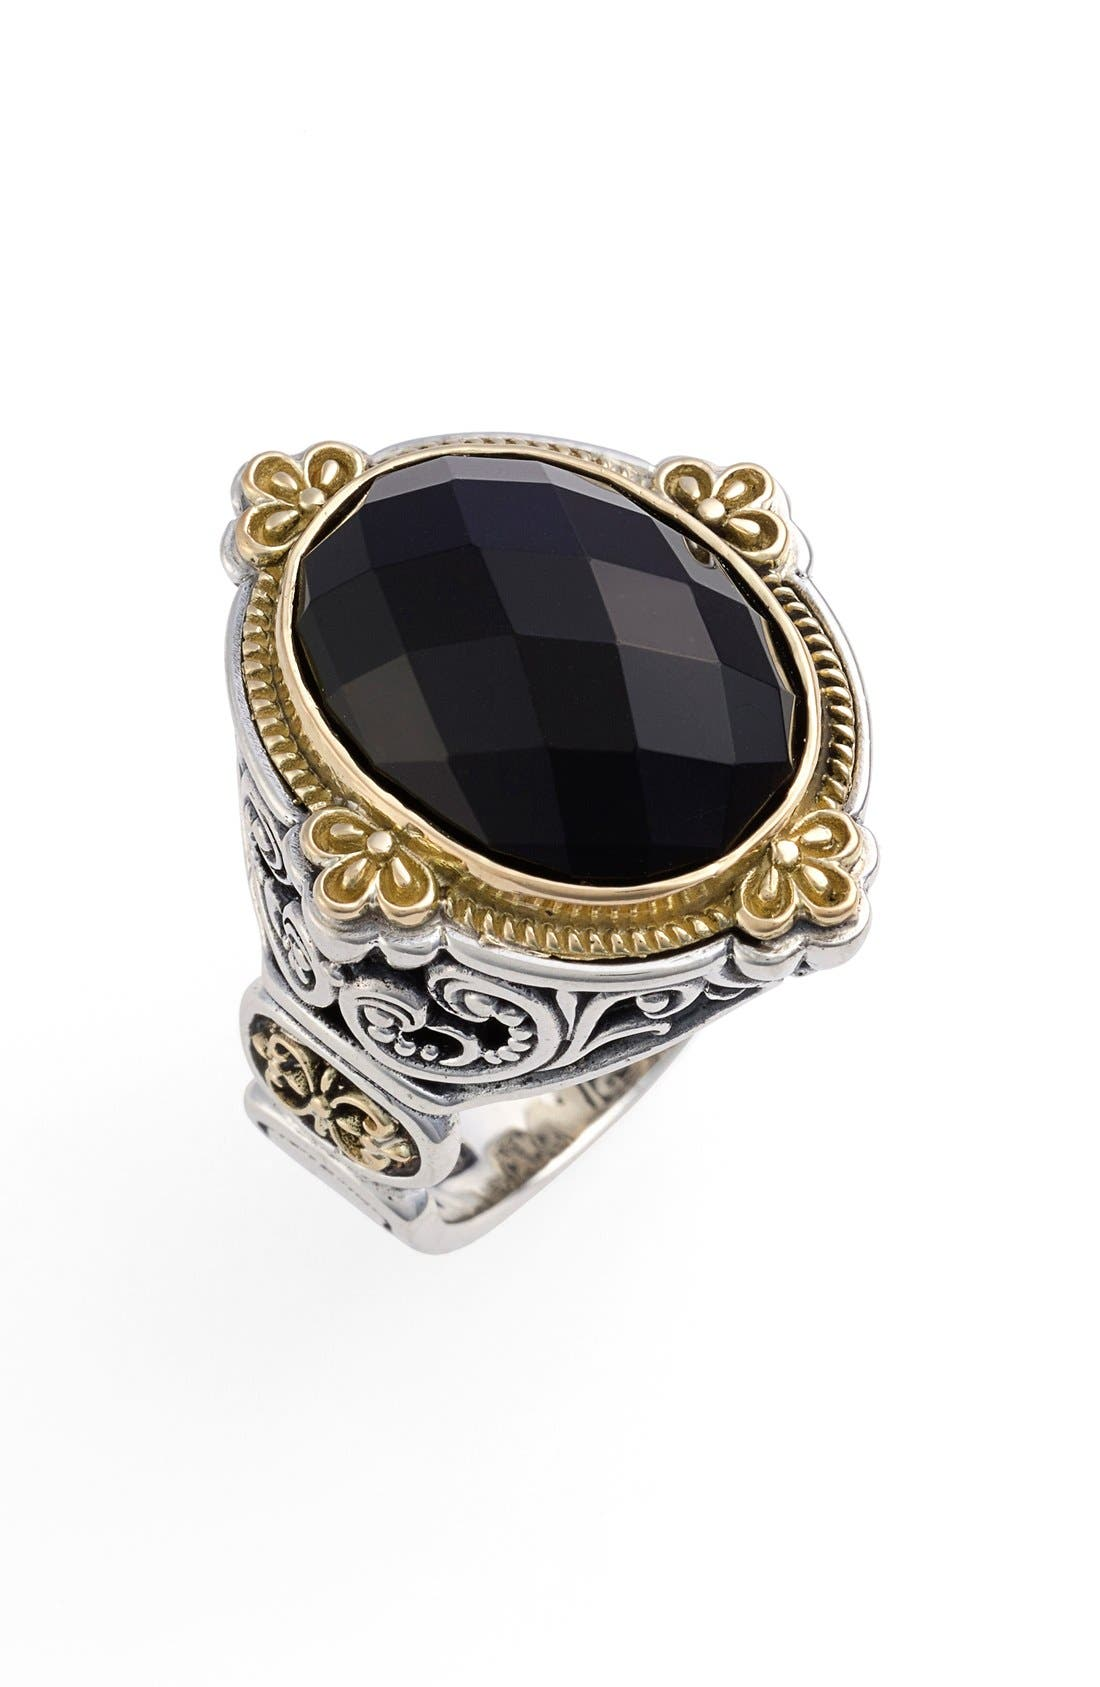 'Nykta' Faceted Stone Ring,                         Main,                         color, Silver/ Gold/ Black Onyx